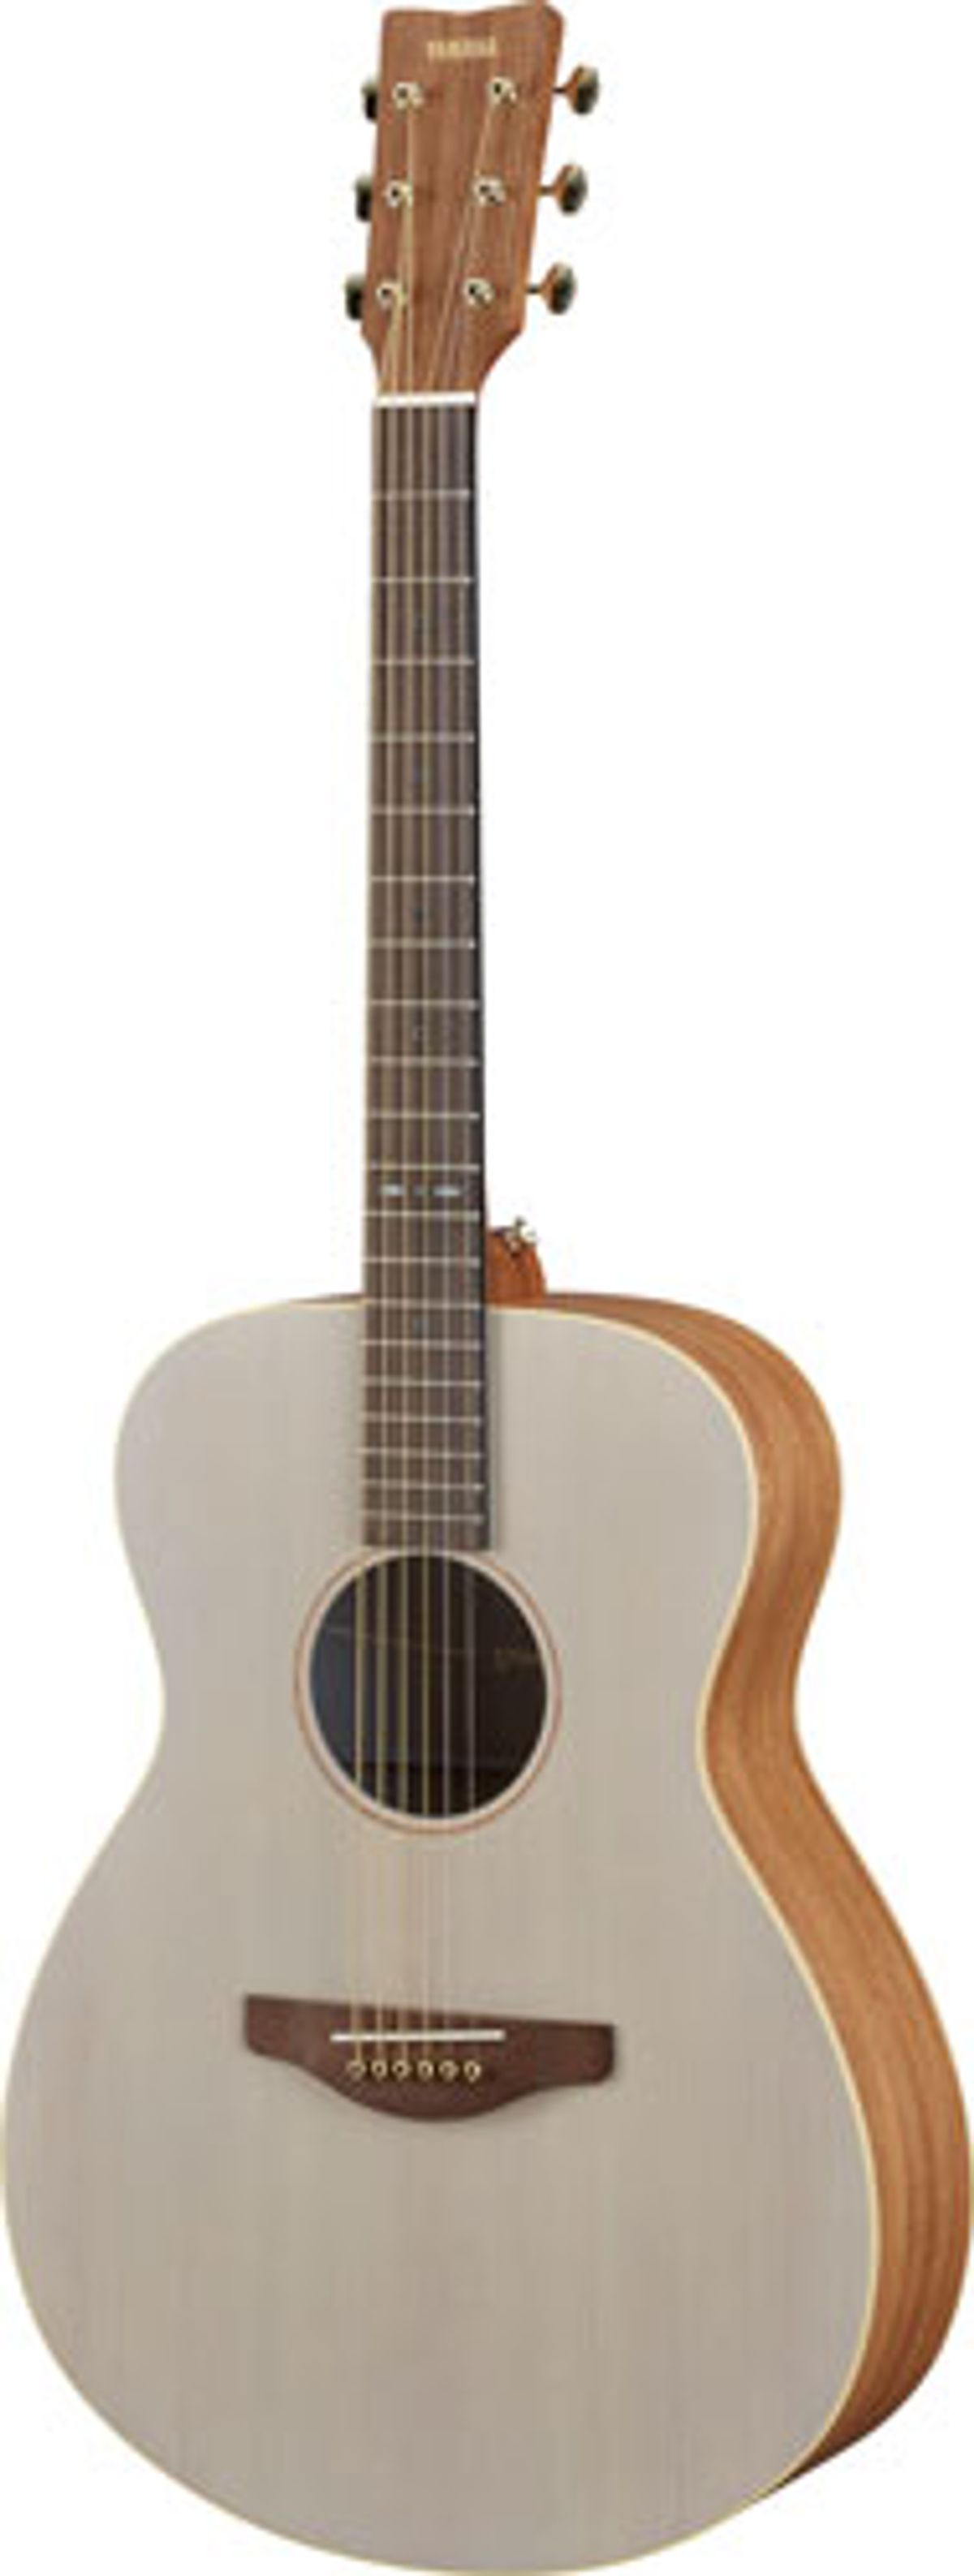 Yamaha Releases Storia Line of Acoustic Guitars